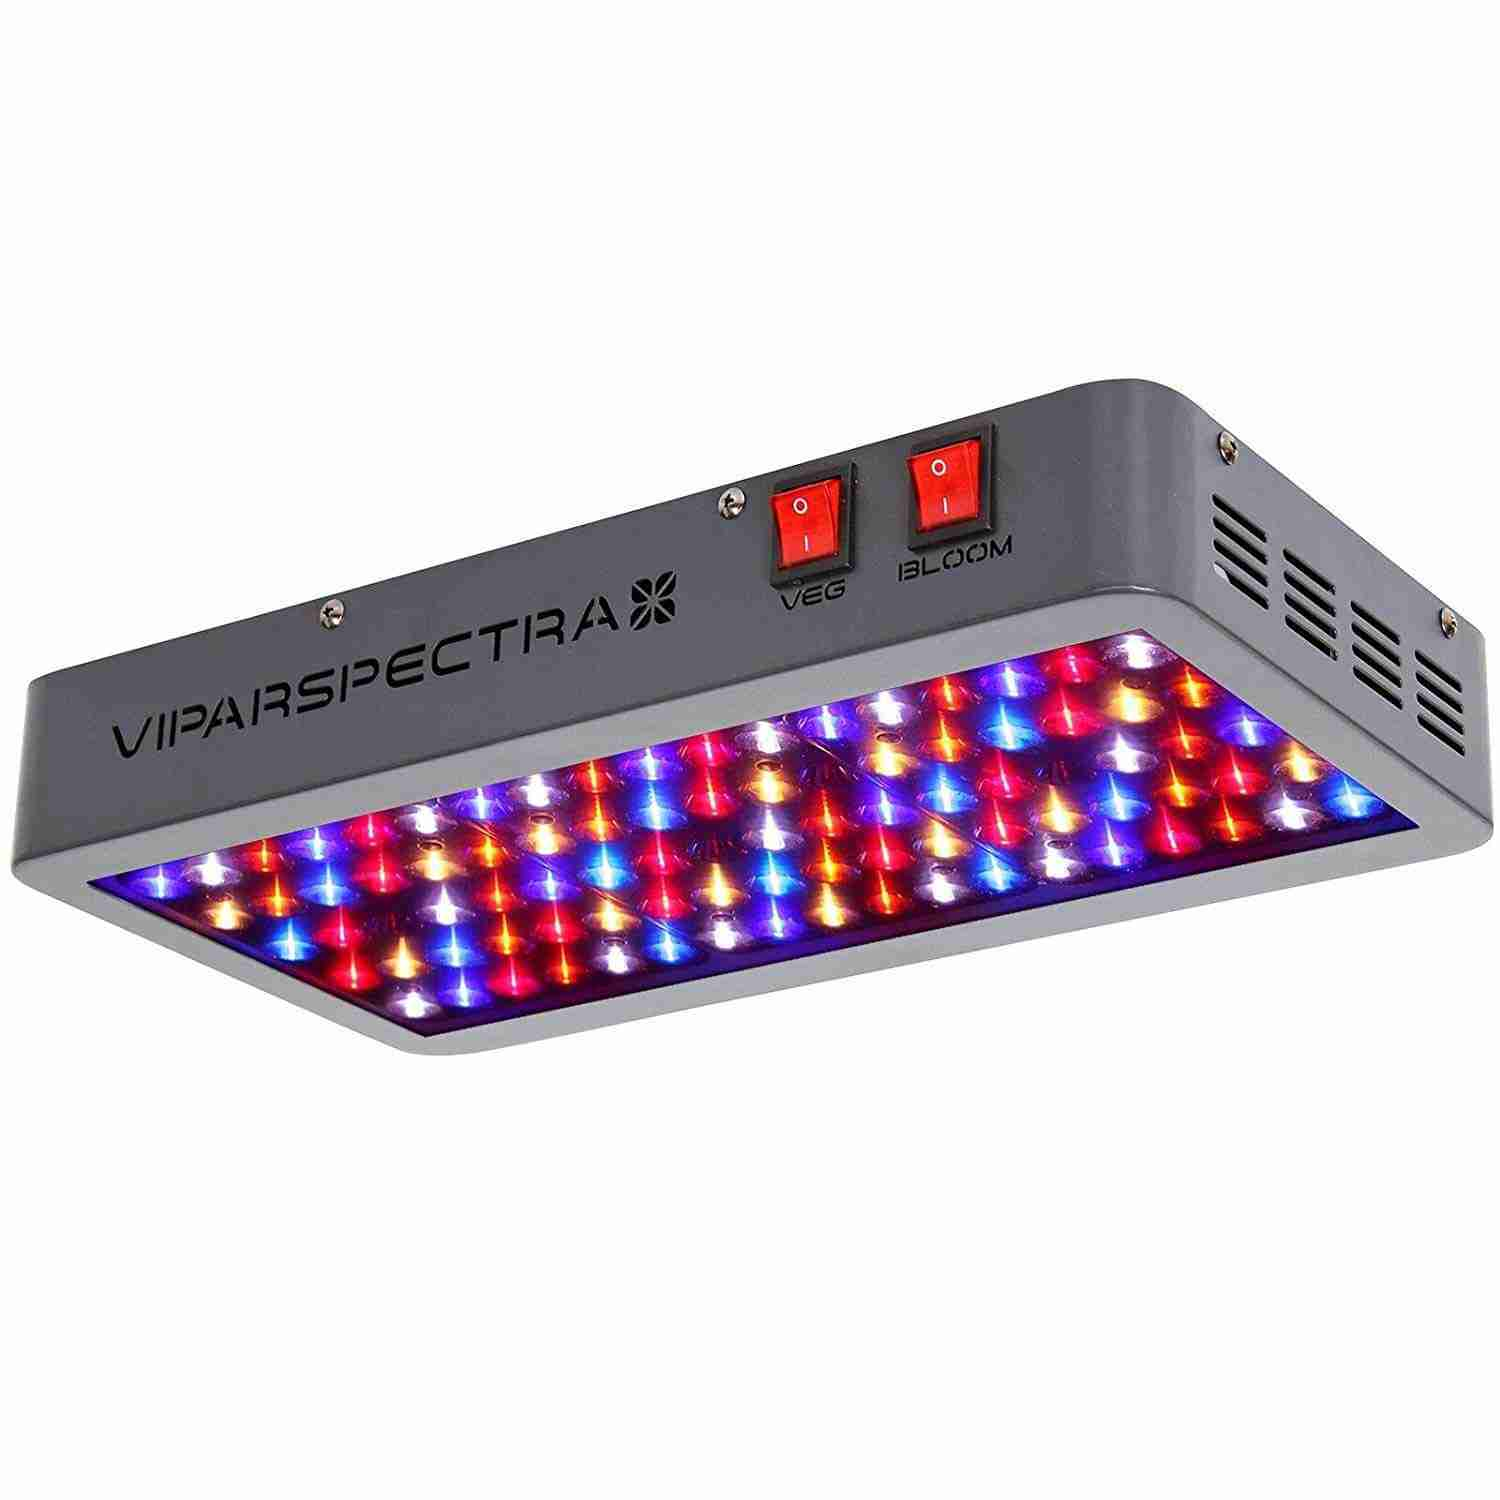 VIPARSPECTRA 450W